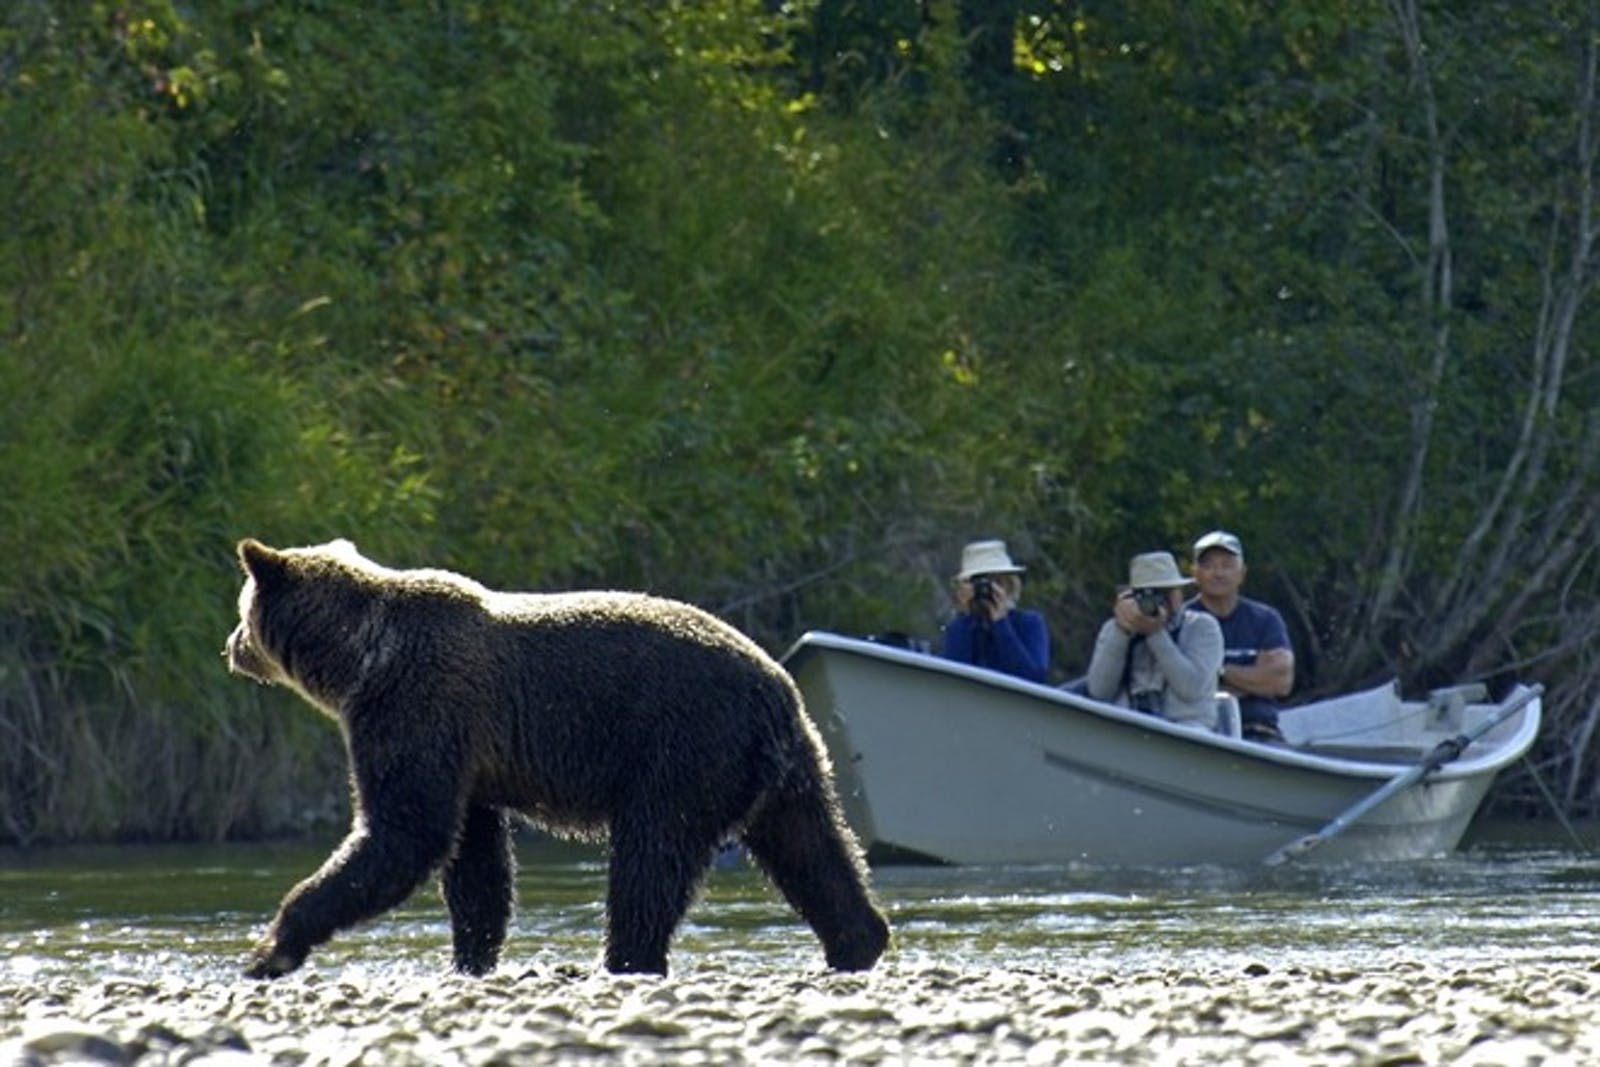 Bear Viewing - Photo by Mike Wigle